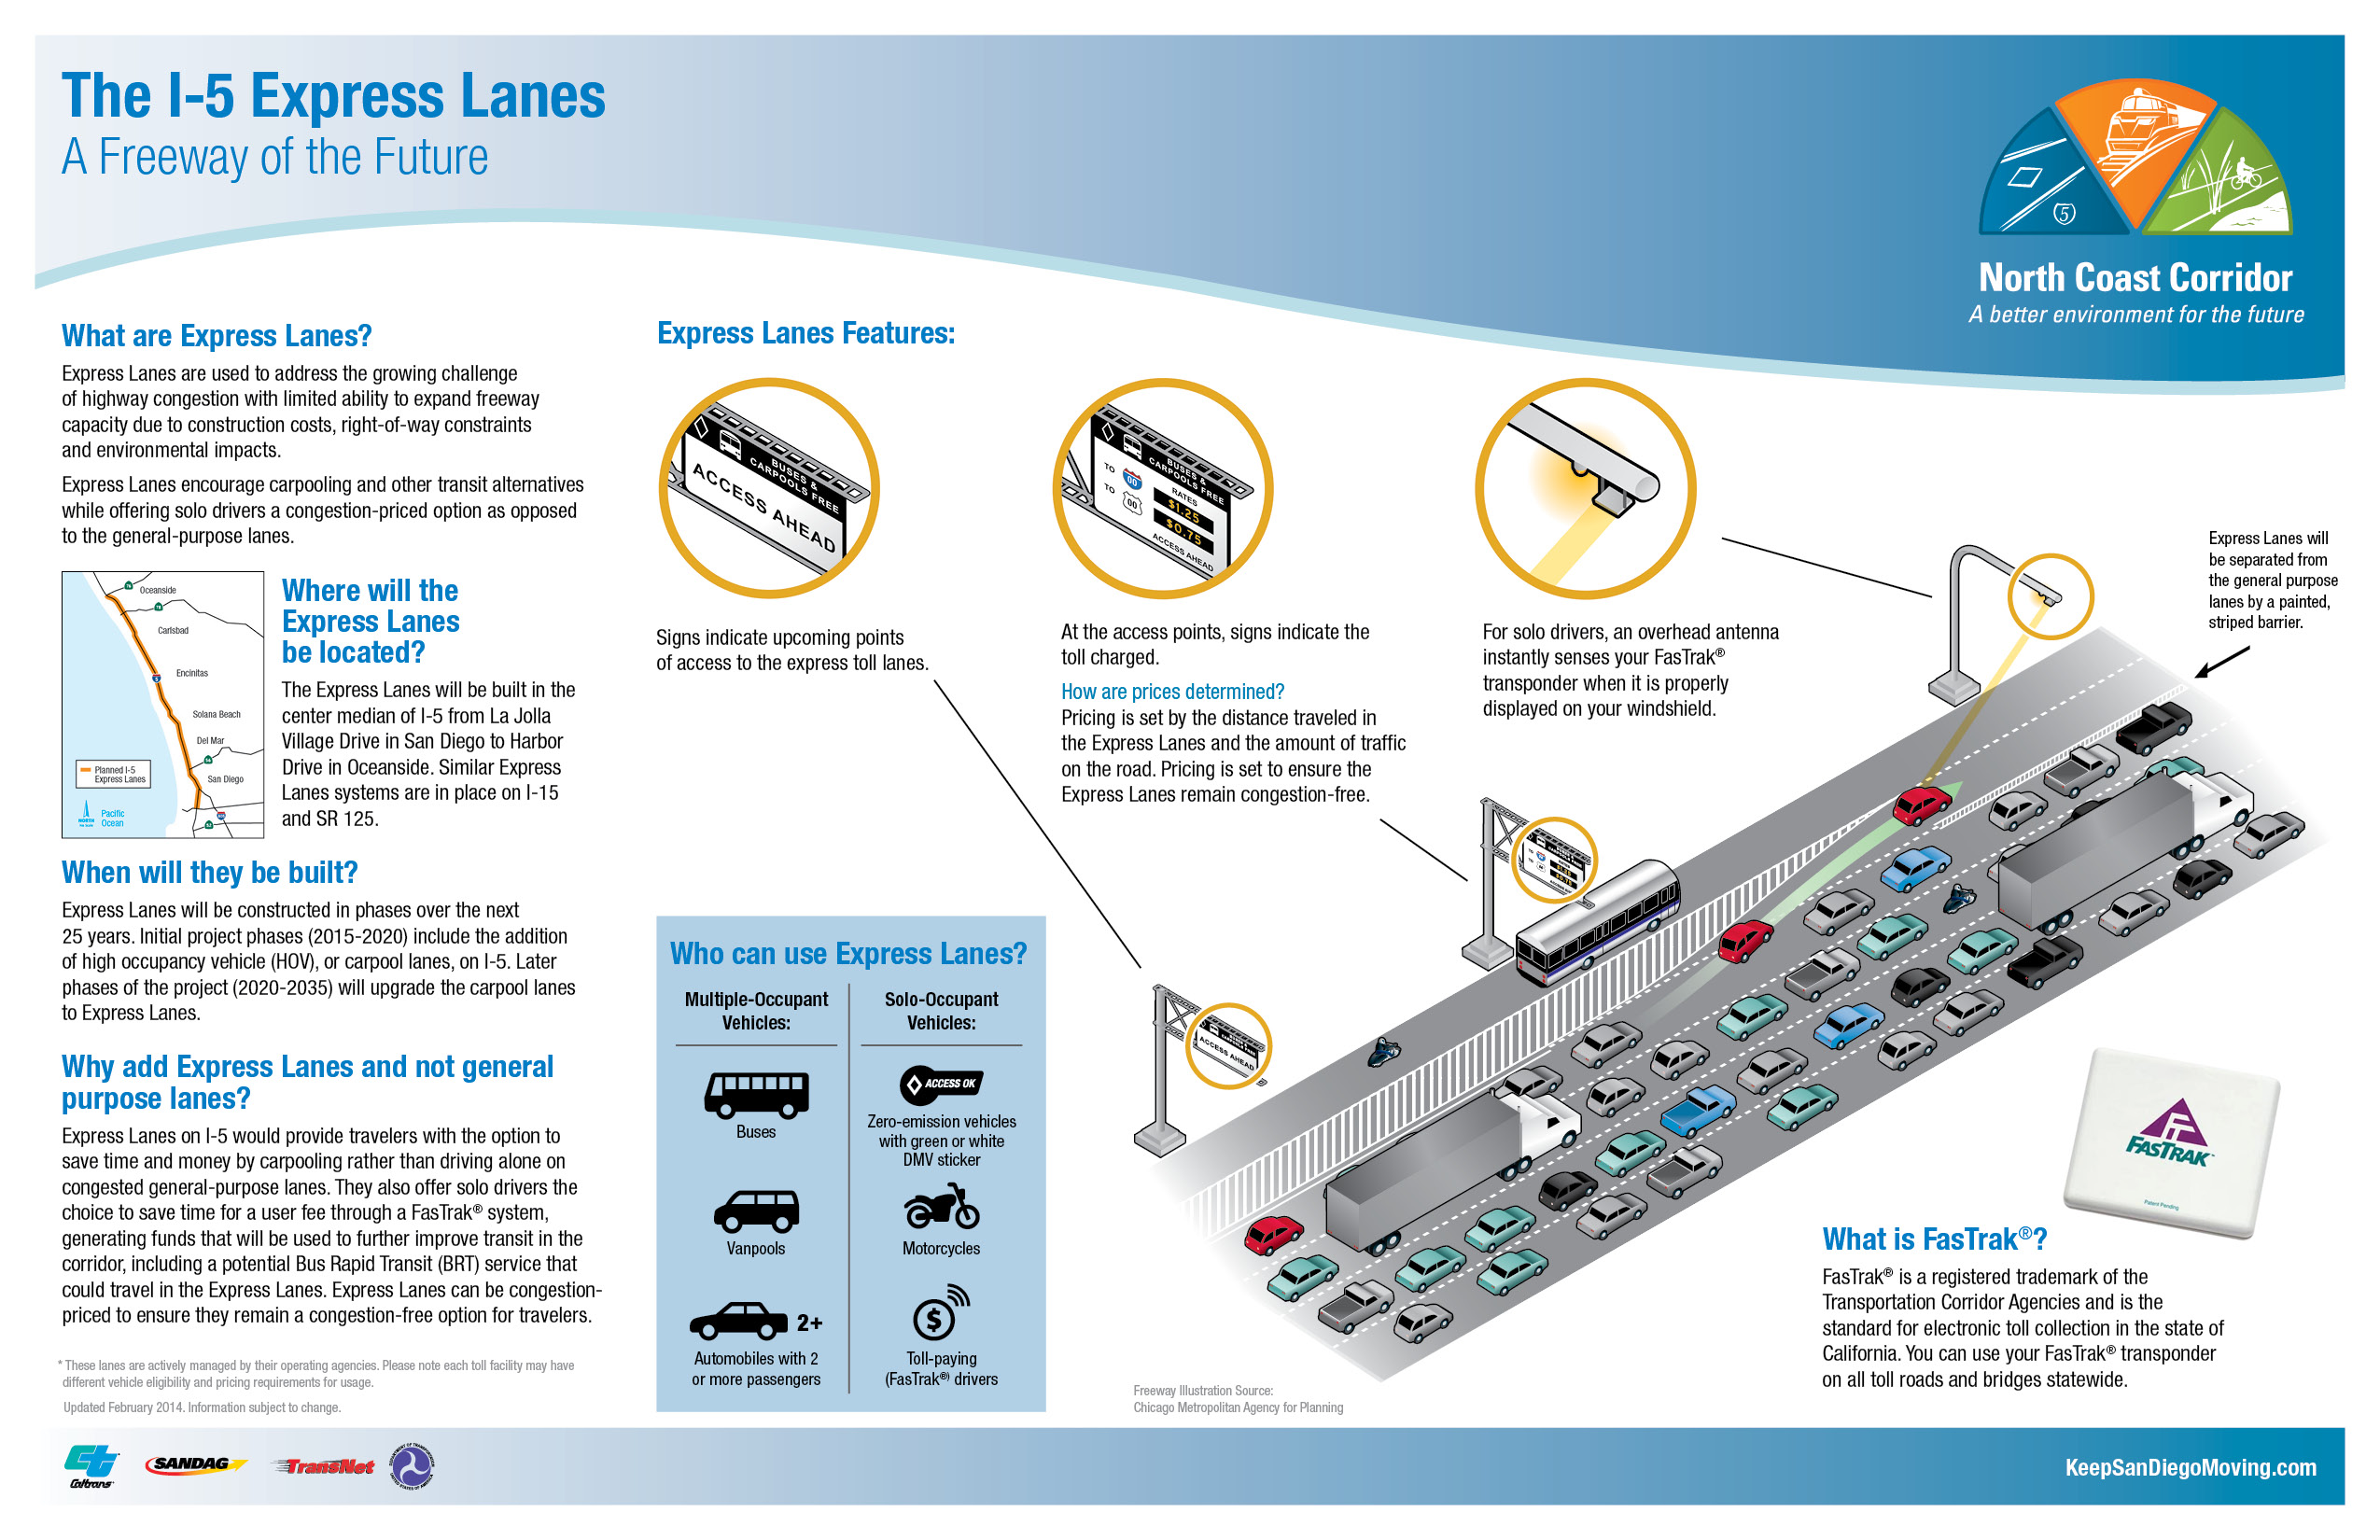 I5 Express Lanes Features